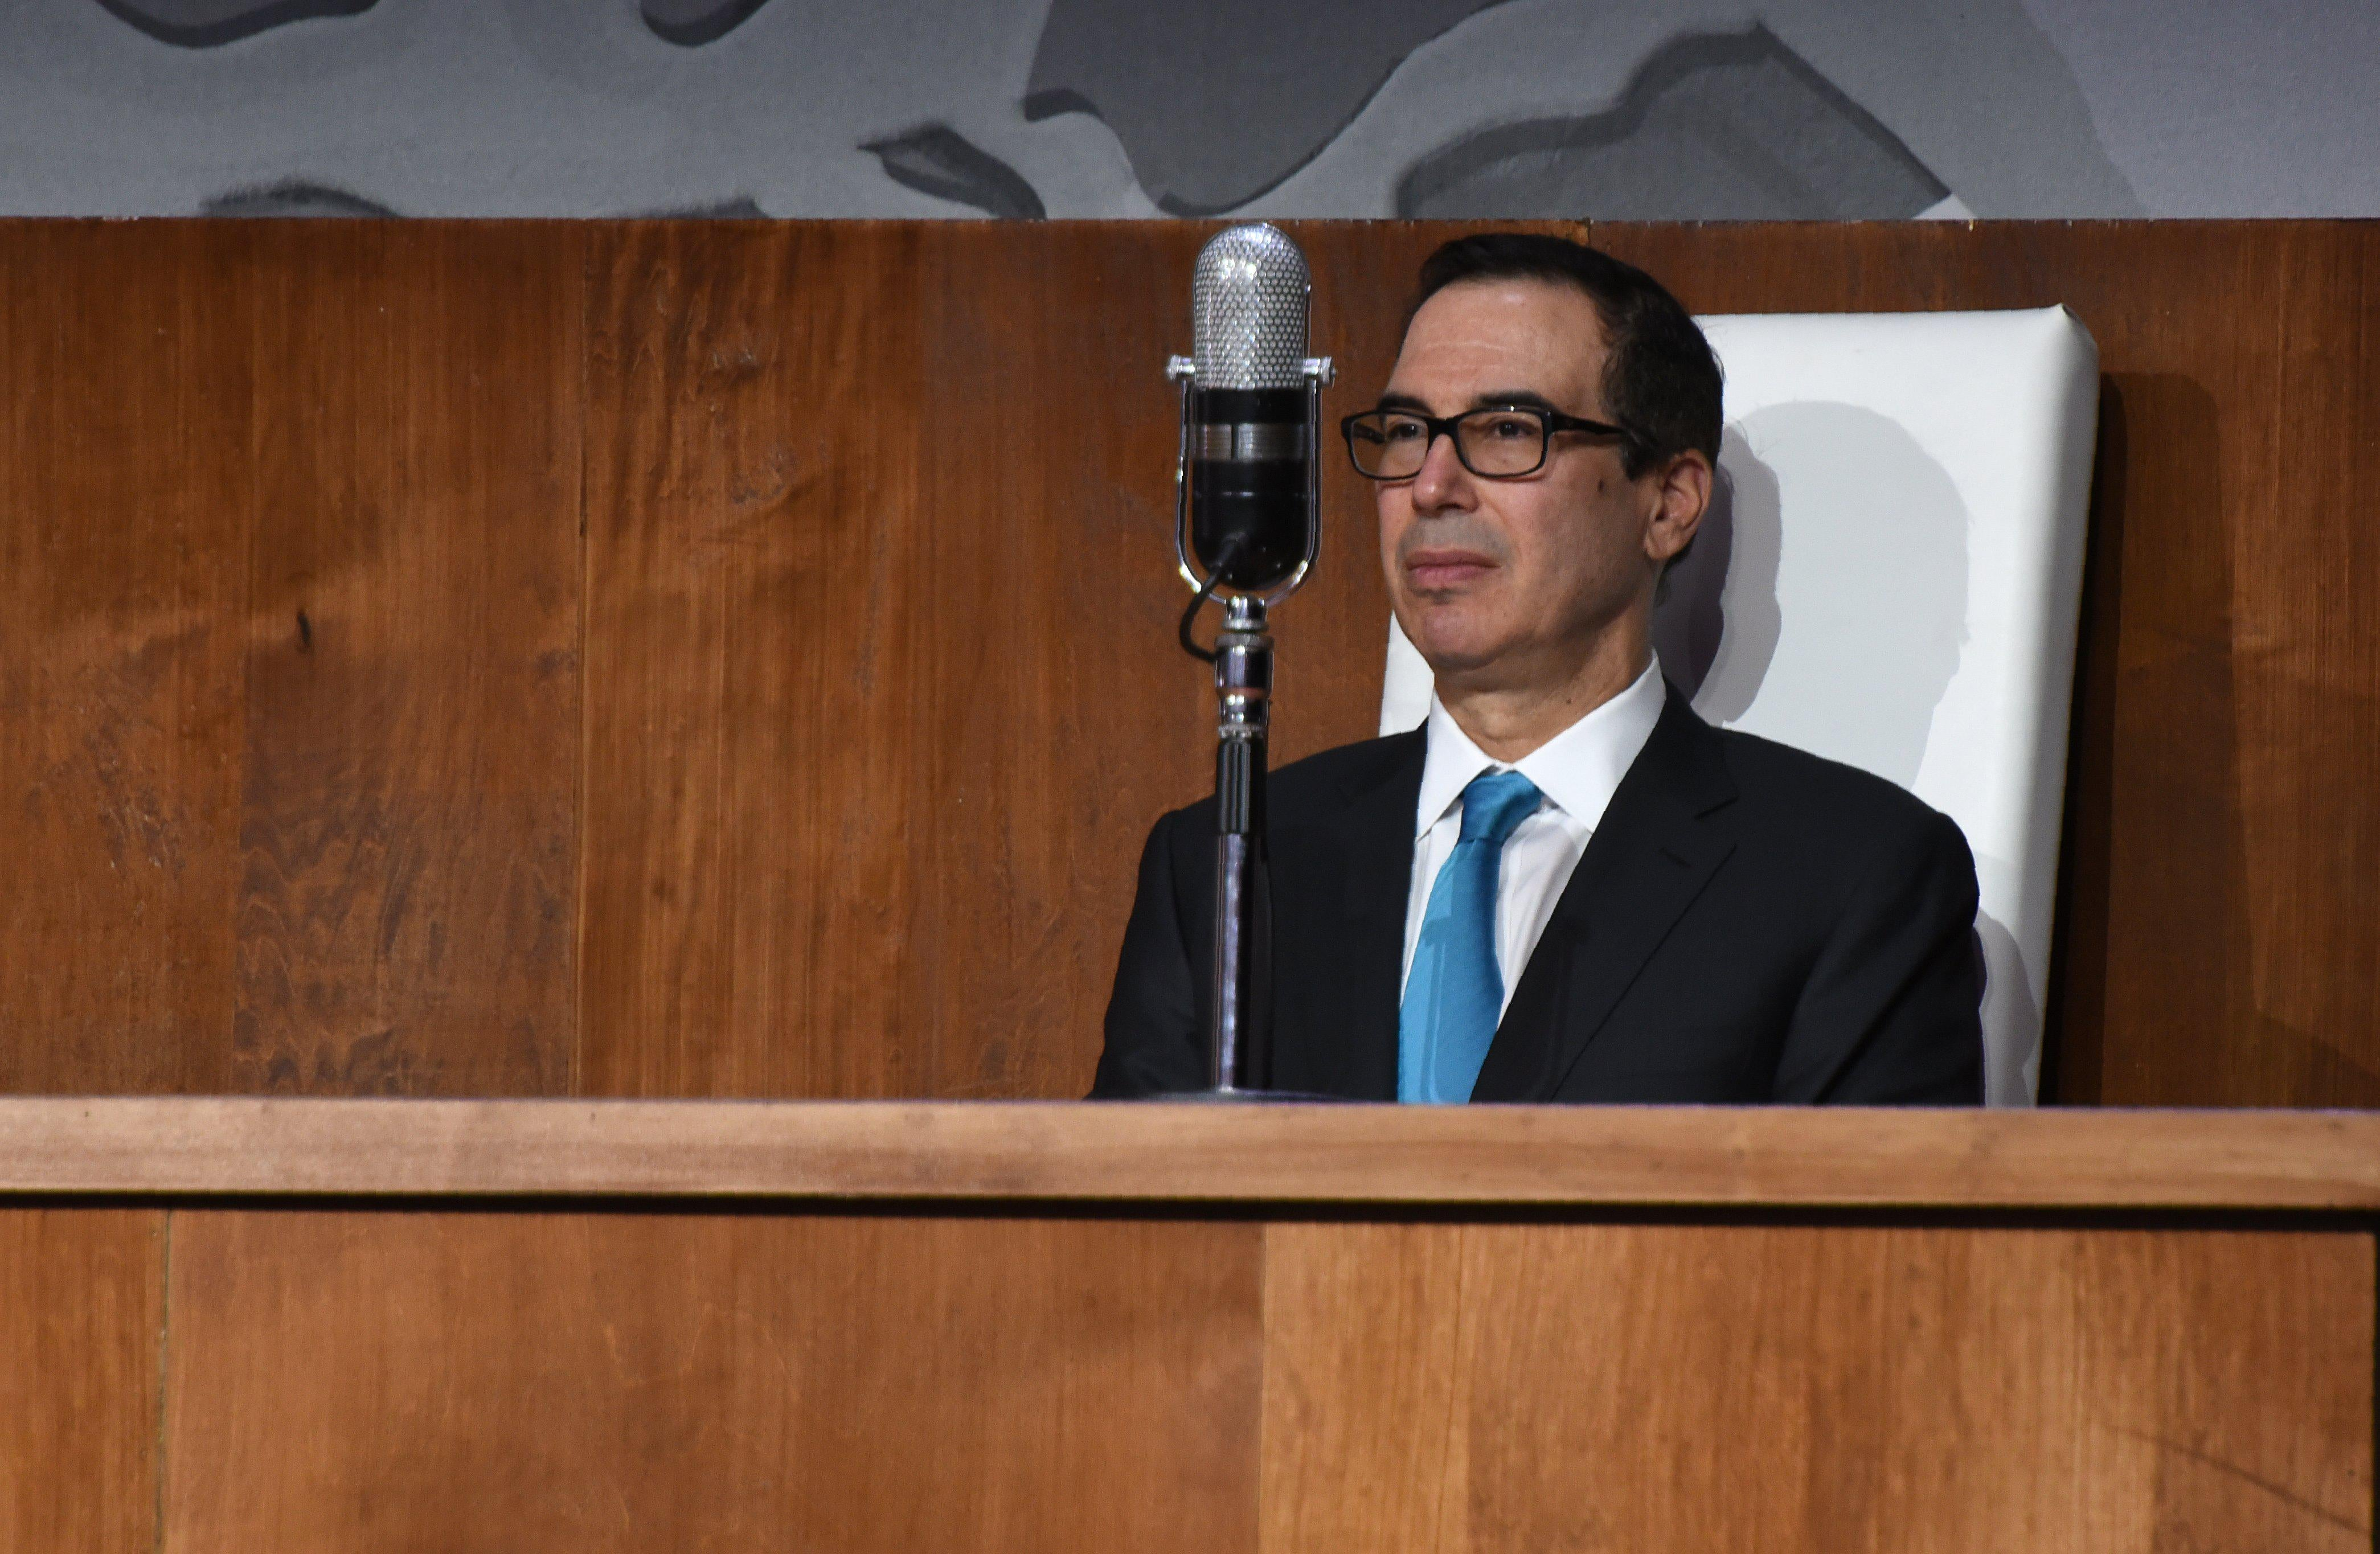 US Treasury Secretary Steven Mnuchin attends the Permanent Mission of Israel to the United Nations event celebrating the 70th anniversary of the UN vote calling for 'the establishment of a Jewish State in the Land of Israel', at Queens Museum on November 28, 2017 in New York. / AFP PHOTO / TIMOTHY A. CLARY        (Photo credit should read TIMOTHY A. CLARY/AFP/Getty Images)